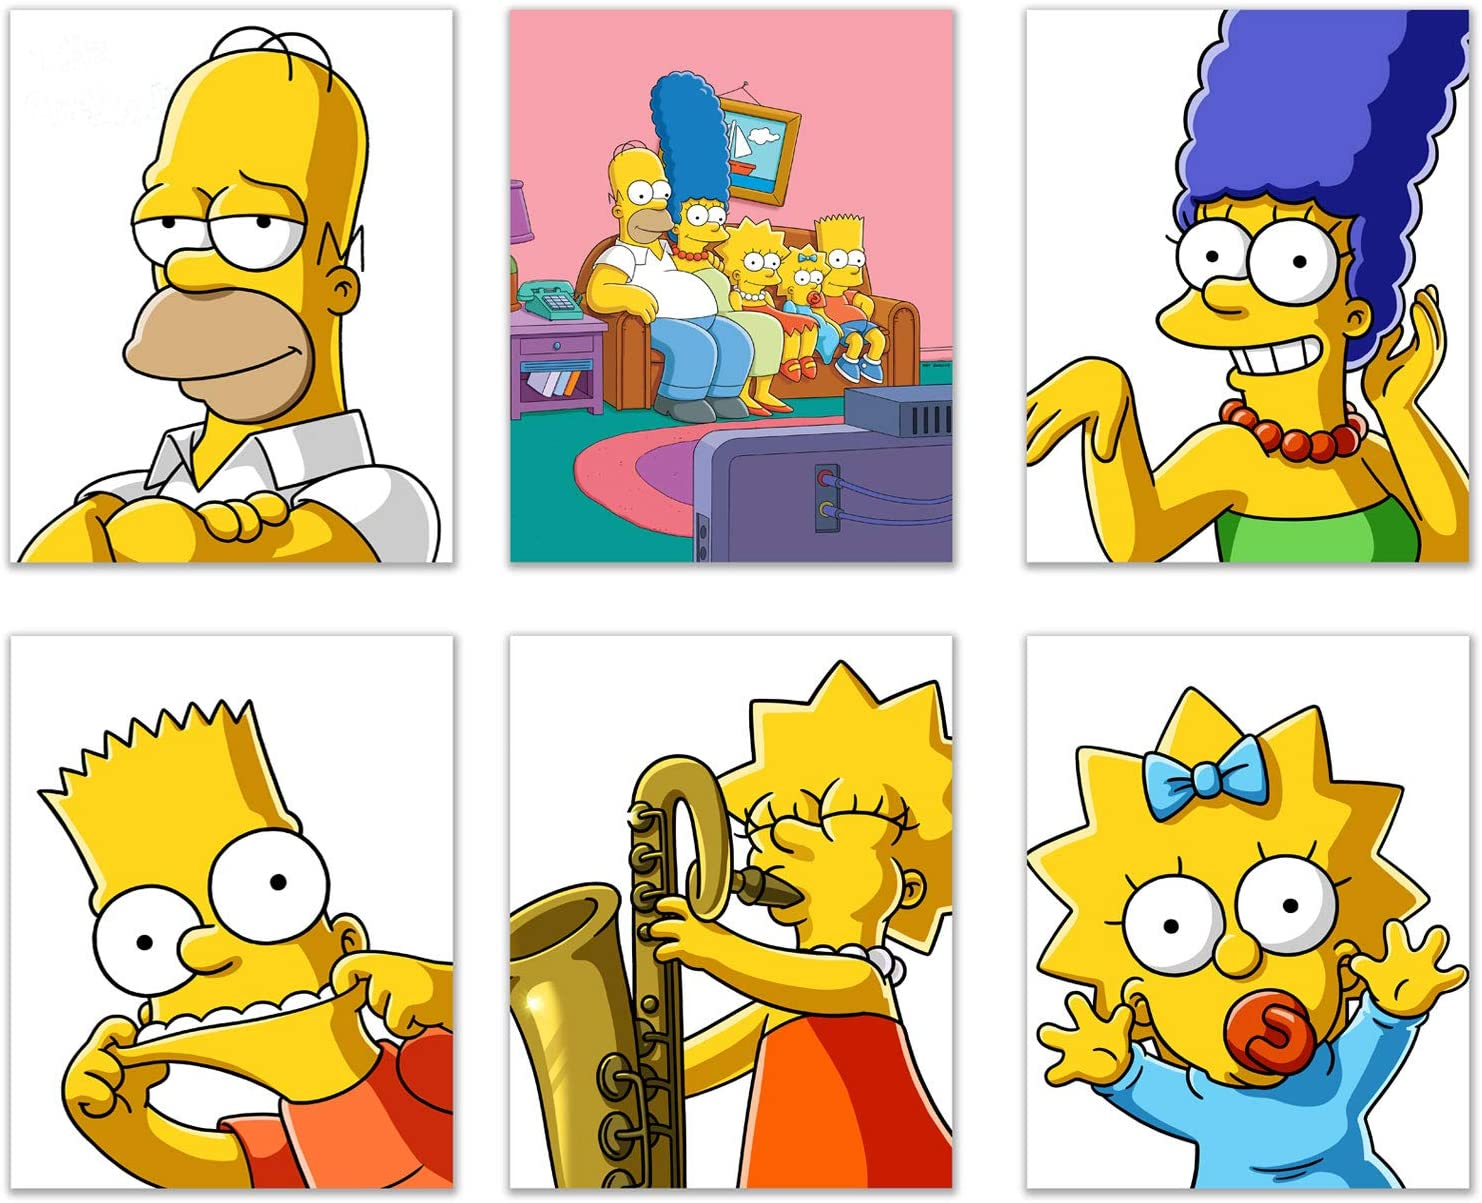 Simpsons Poster Prints - Set of 6 (8 inches x 10 inches) Movie Poster Prints - Bart Homer Marge Lisa Maggie